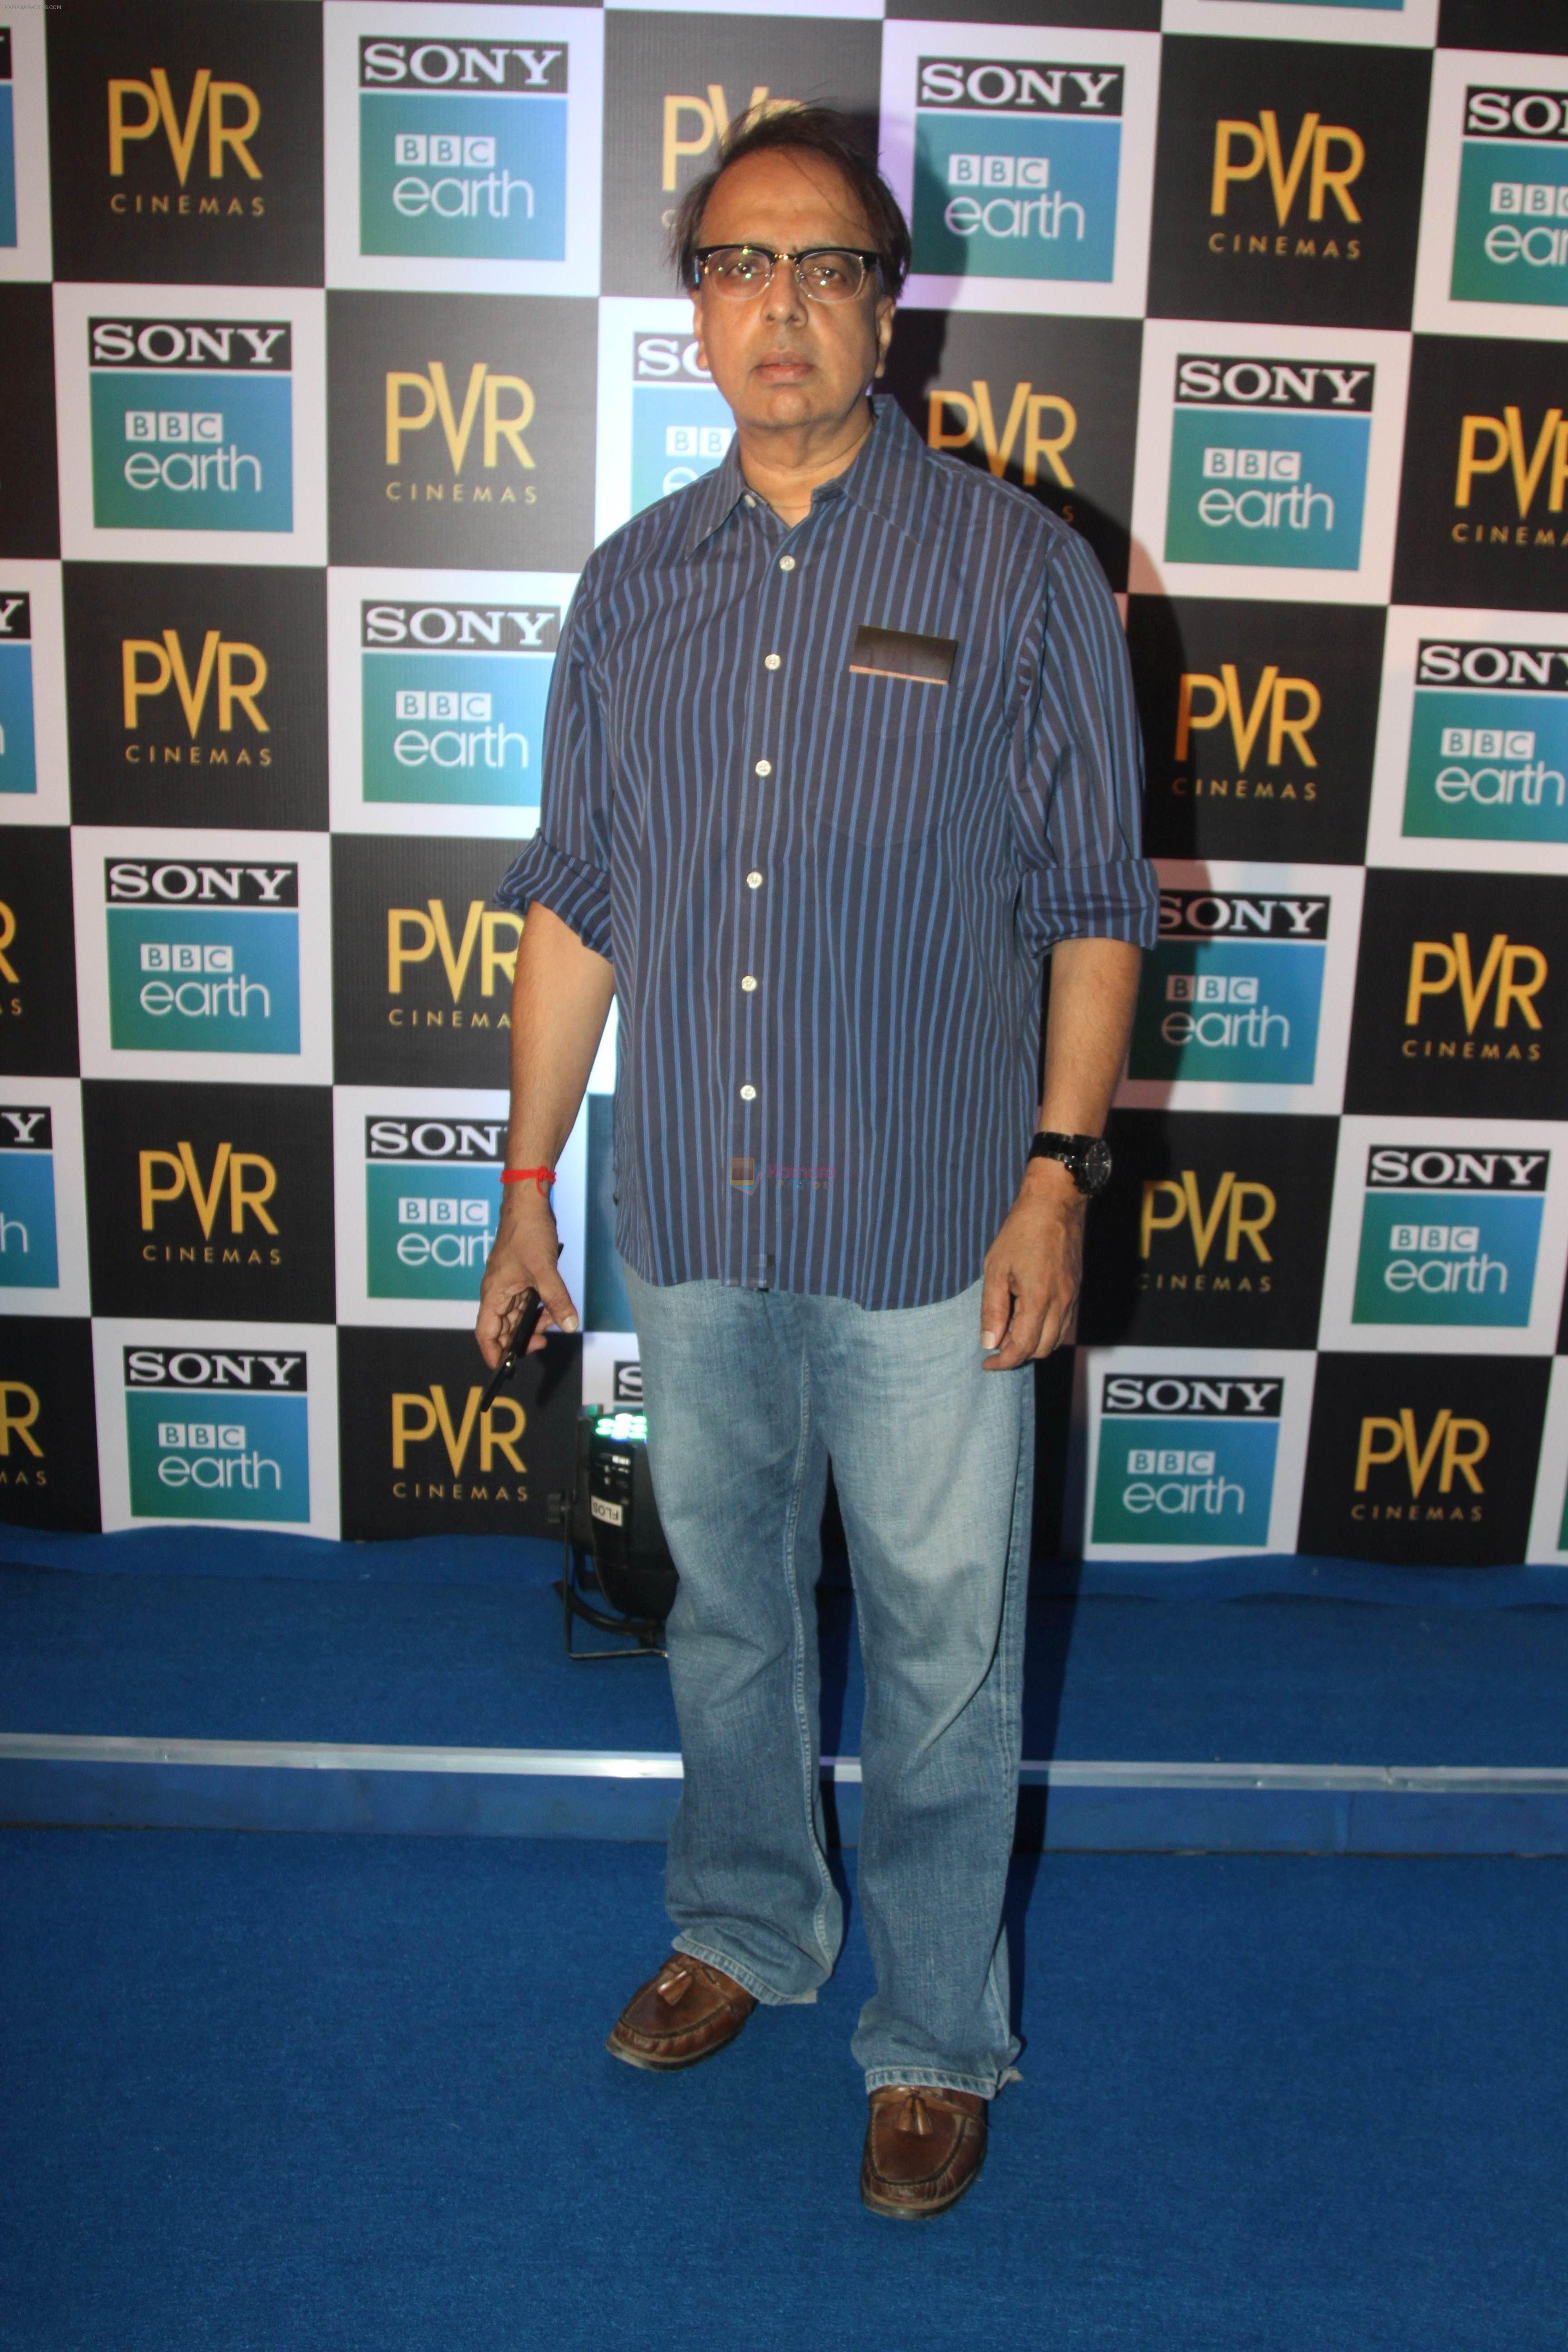 Anant Mahadevan at the Screening of Sony BBC Earth's film Blue Planet 2 at pvr icon in andheri on 15th May 2018